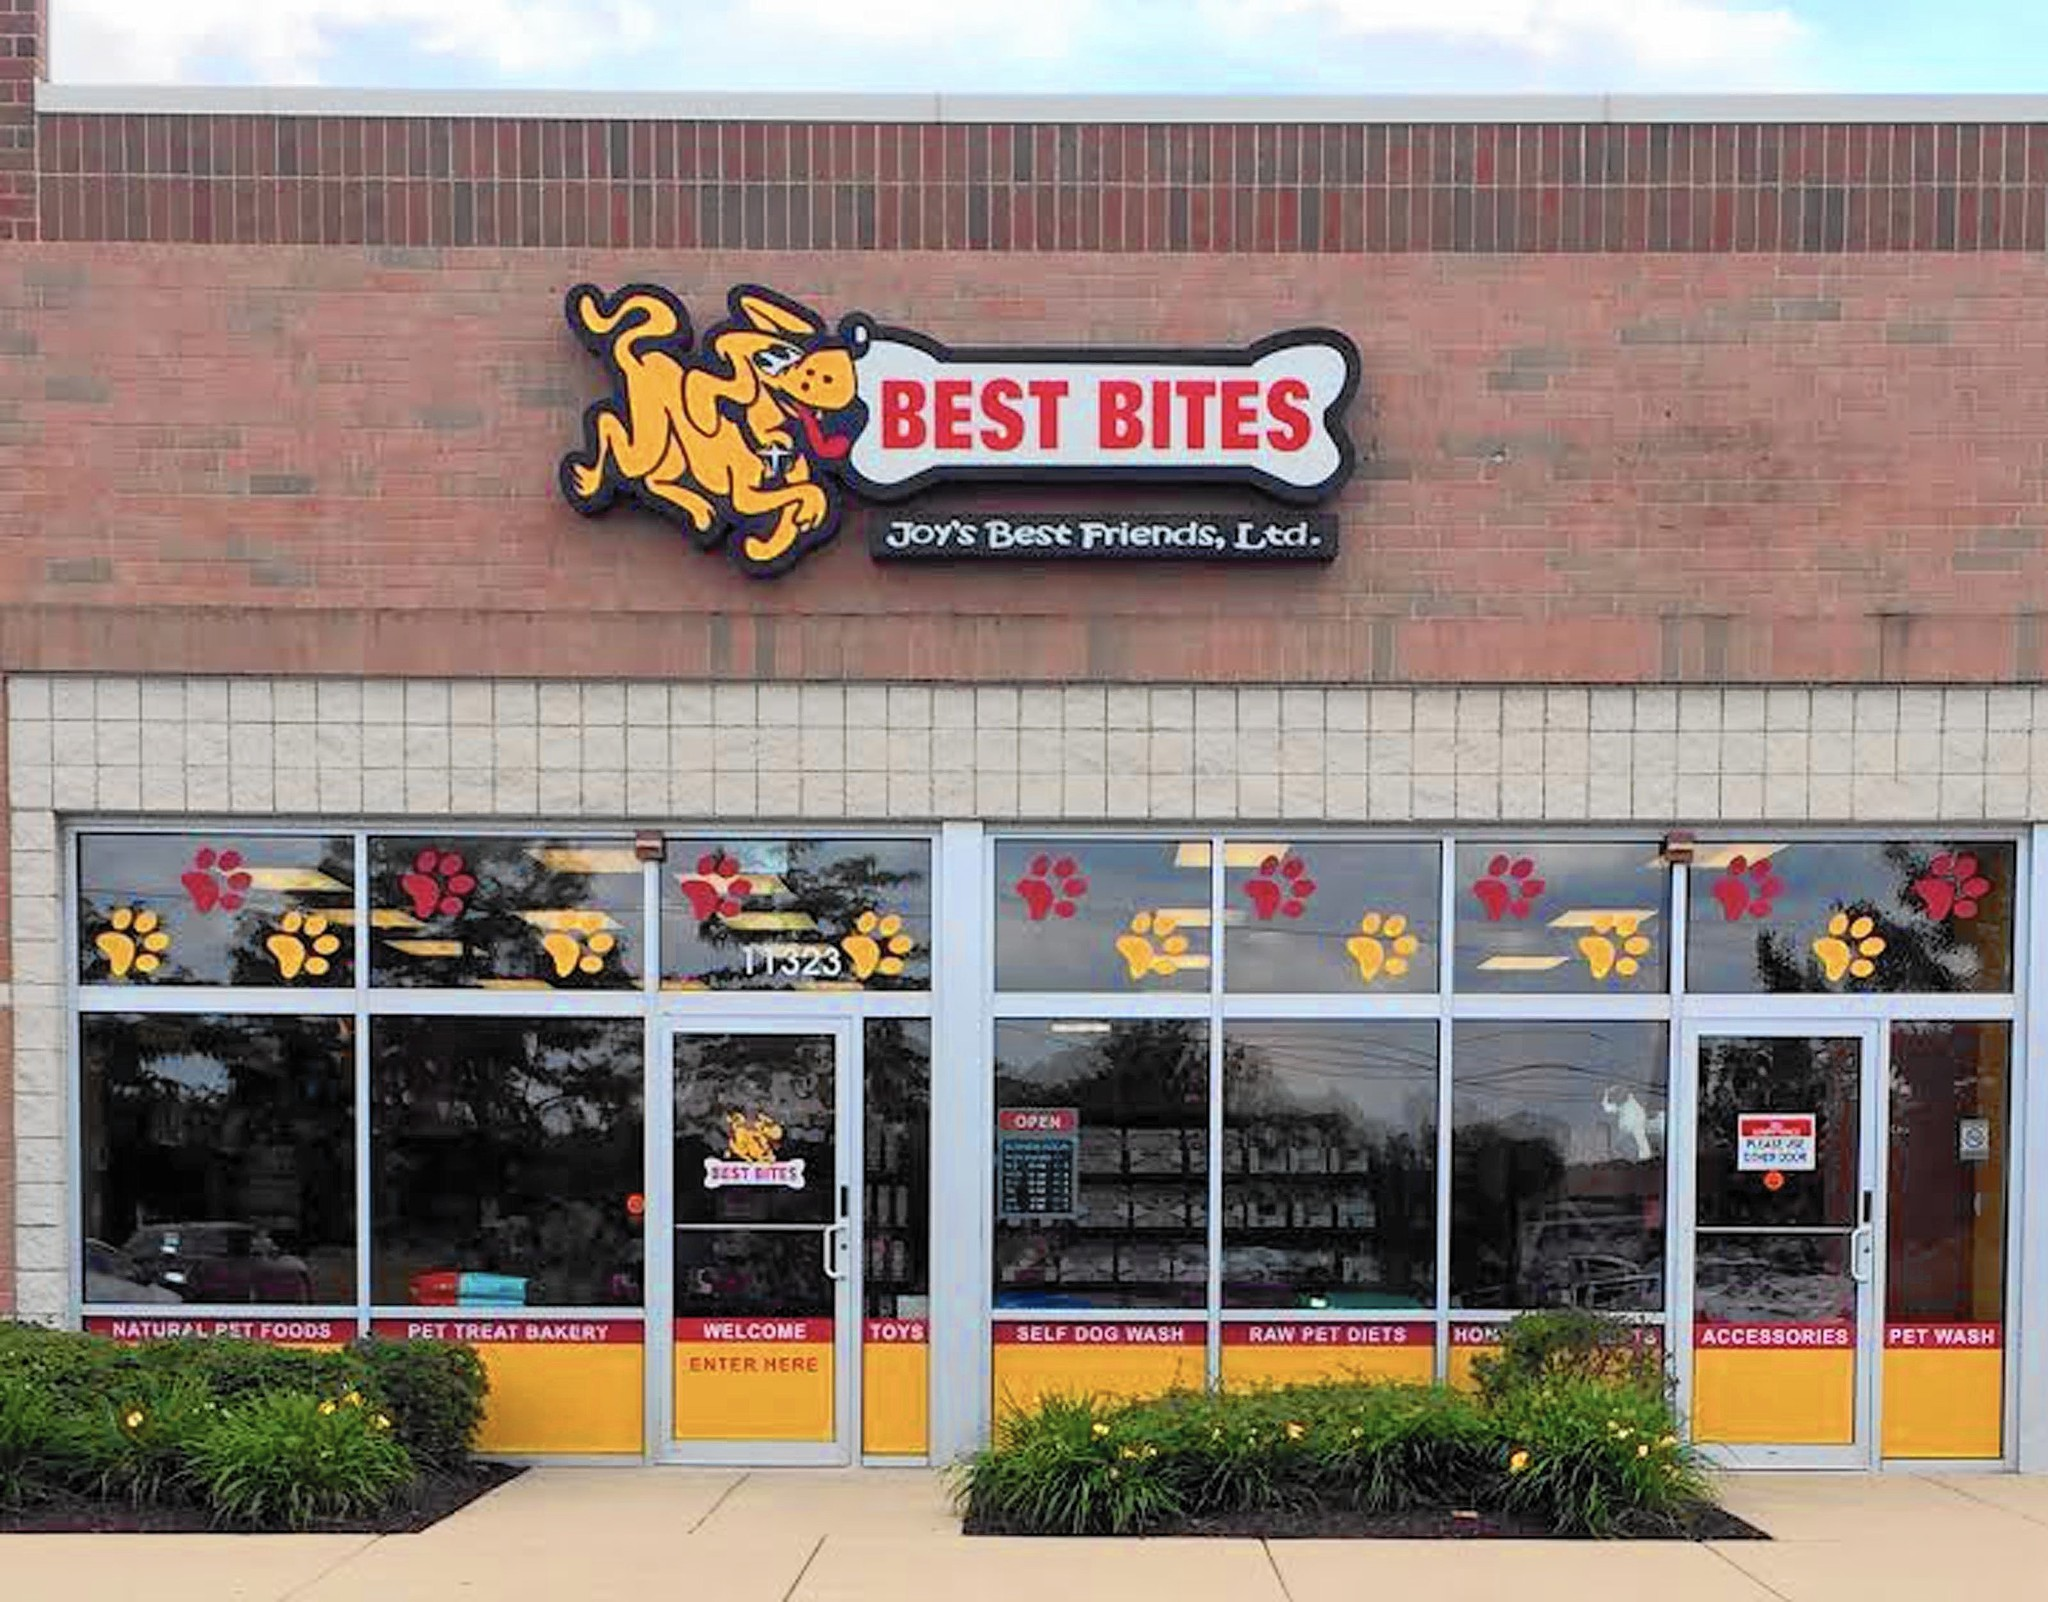 Comings and goings store for pets moves to orland park opens treat comings and goings store for pets moves to orland park opens treat bakery daily southtown solutioingenieria Choice Image